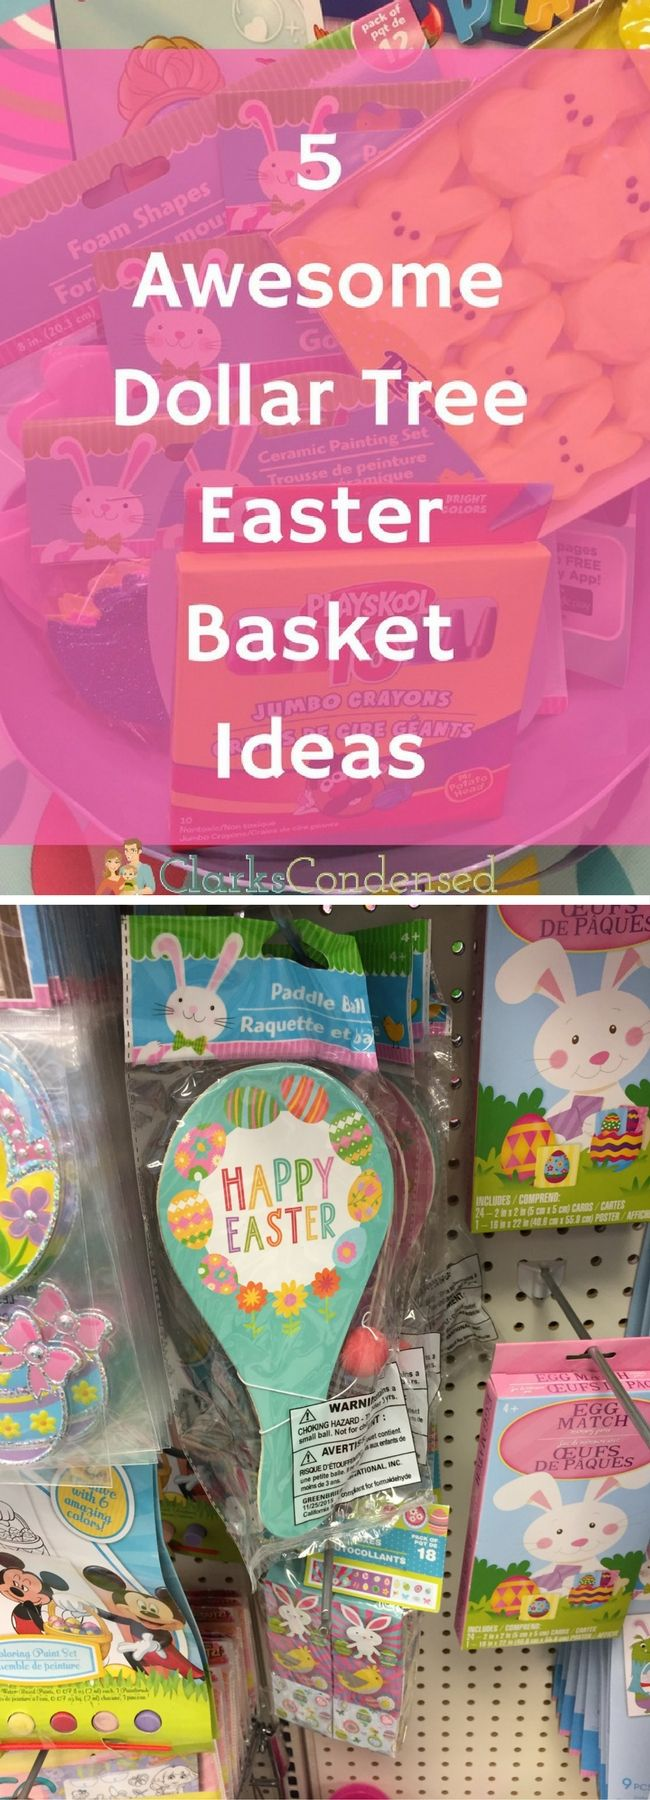 Awesome dollar tree easter basket ideas basket ideas easter get some easy and inexpensive easter basket ideas from the dollar tree negle Gallery